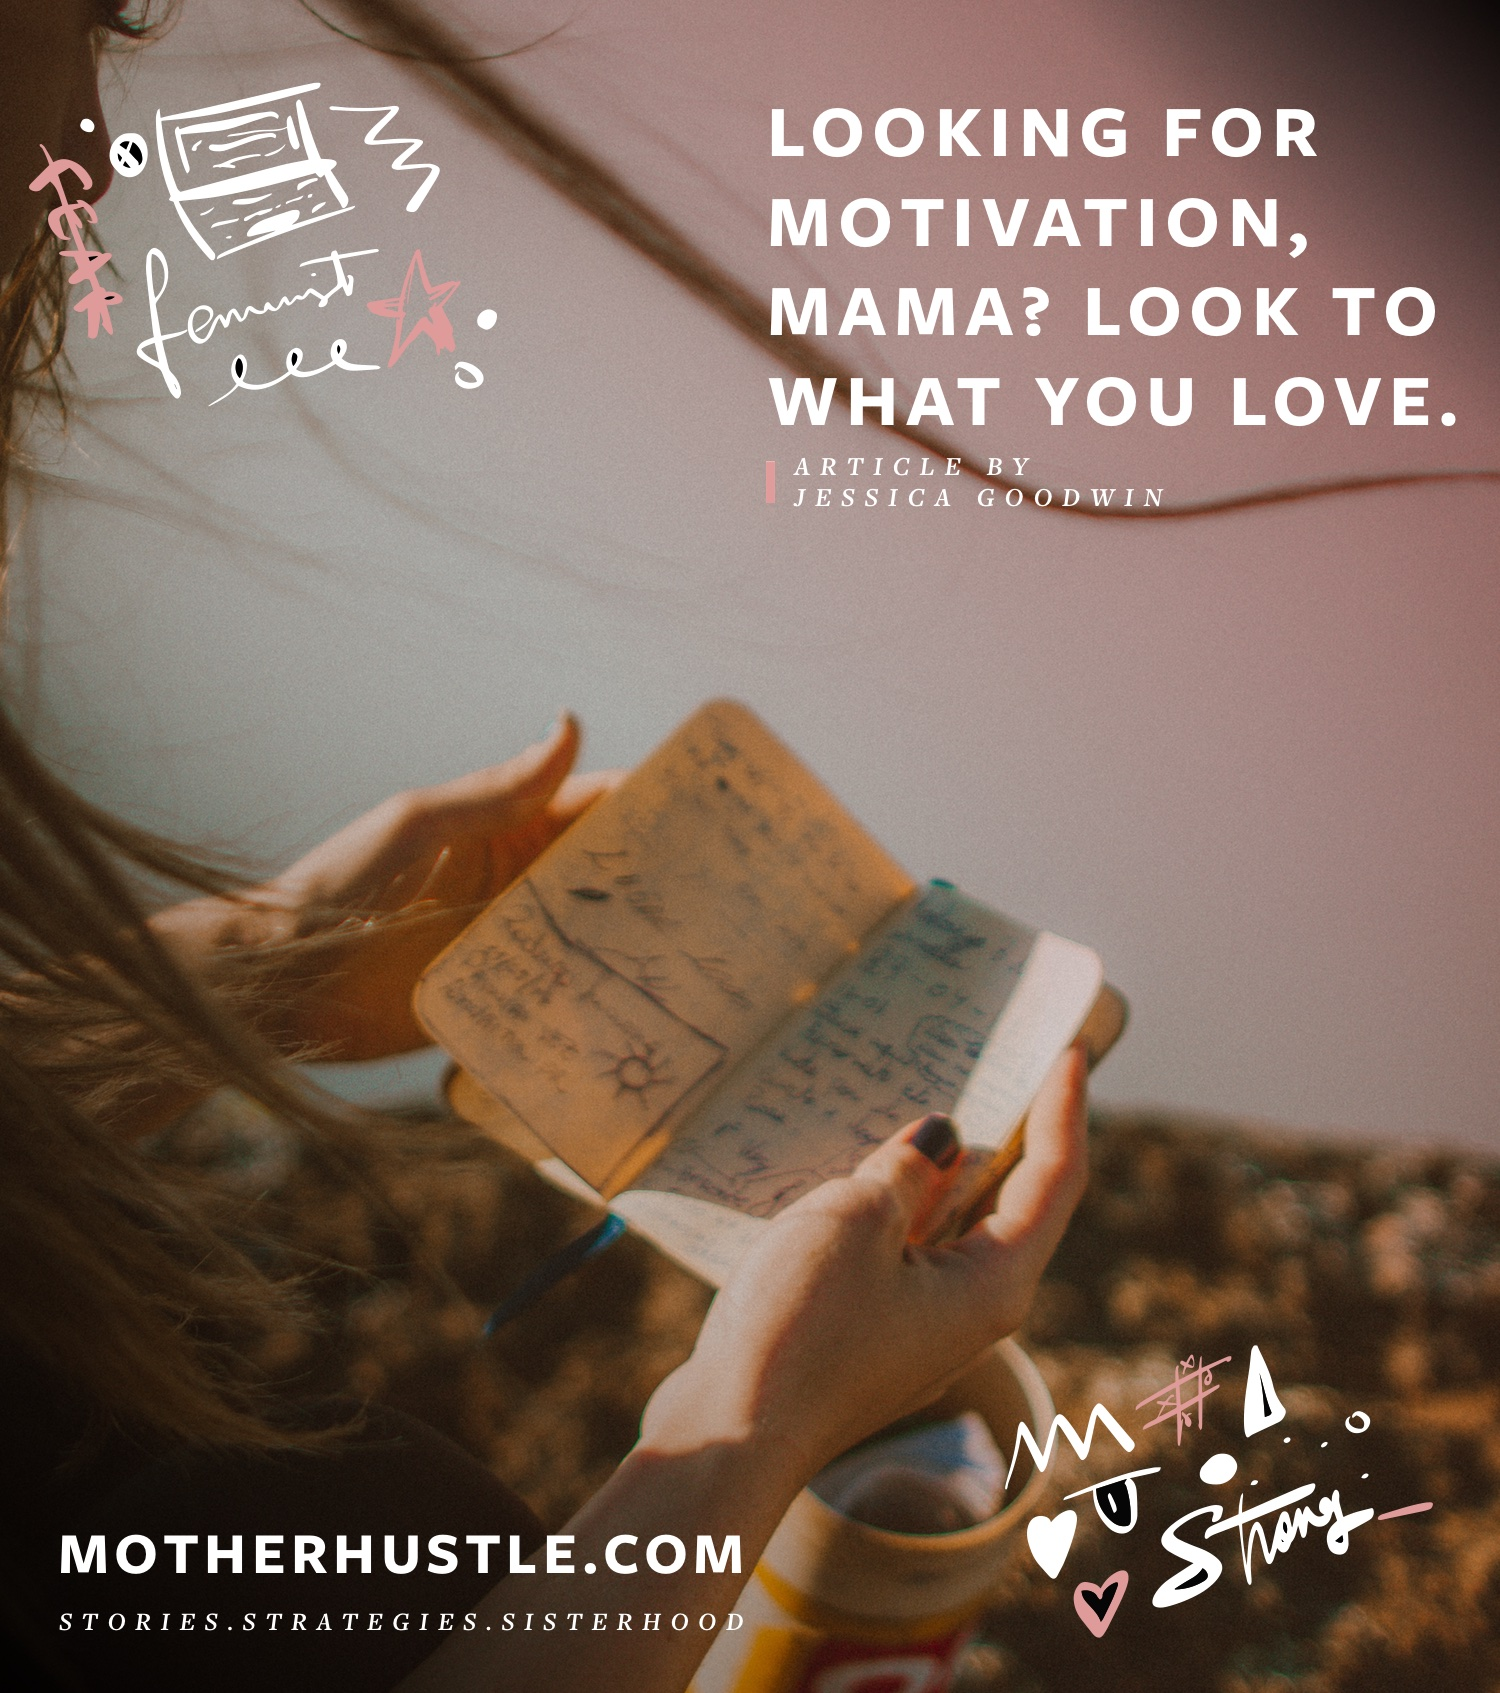 Looking for Motivation, Mama? Look to What You Love - by Jessica Goodwin for MotherHustle